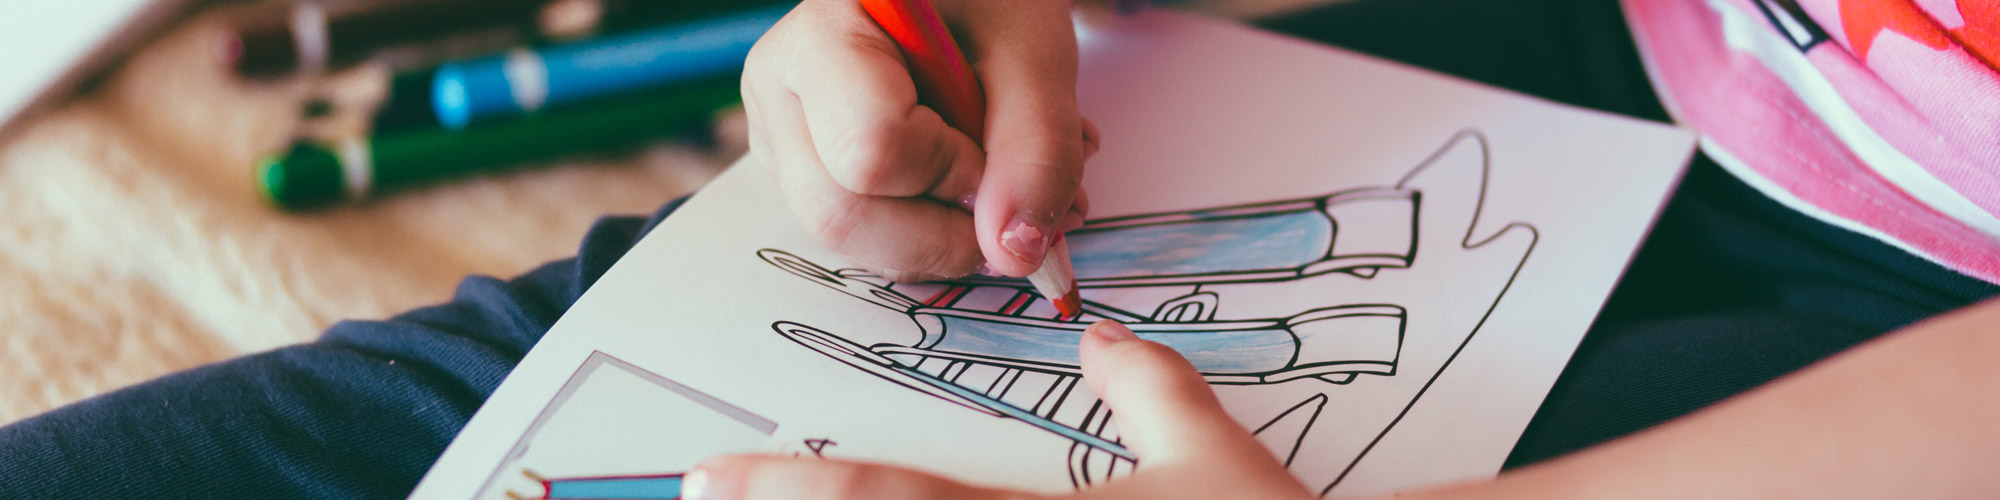 child colouring image of a slide.